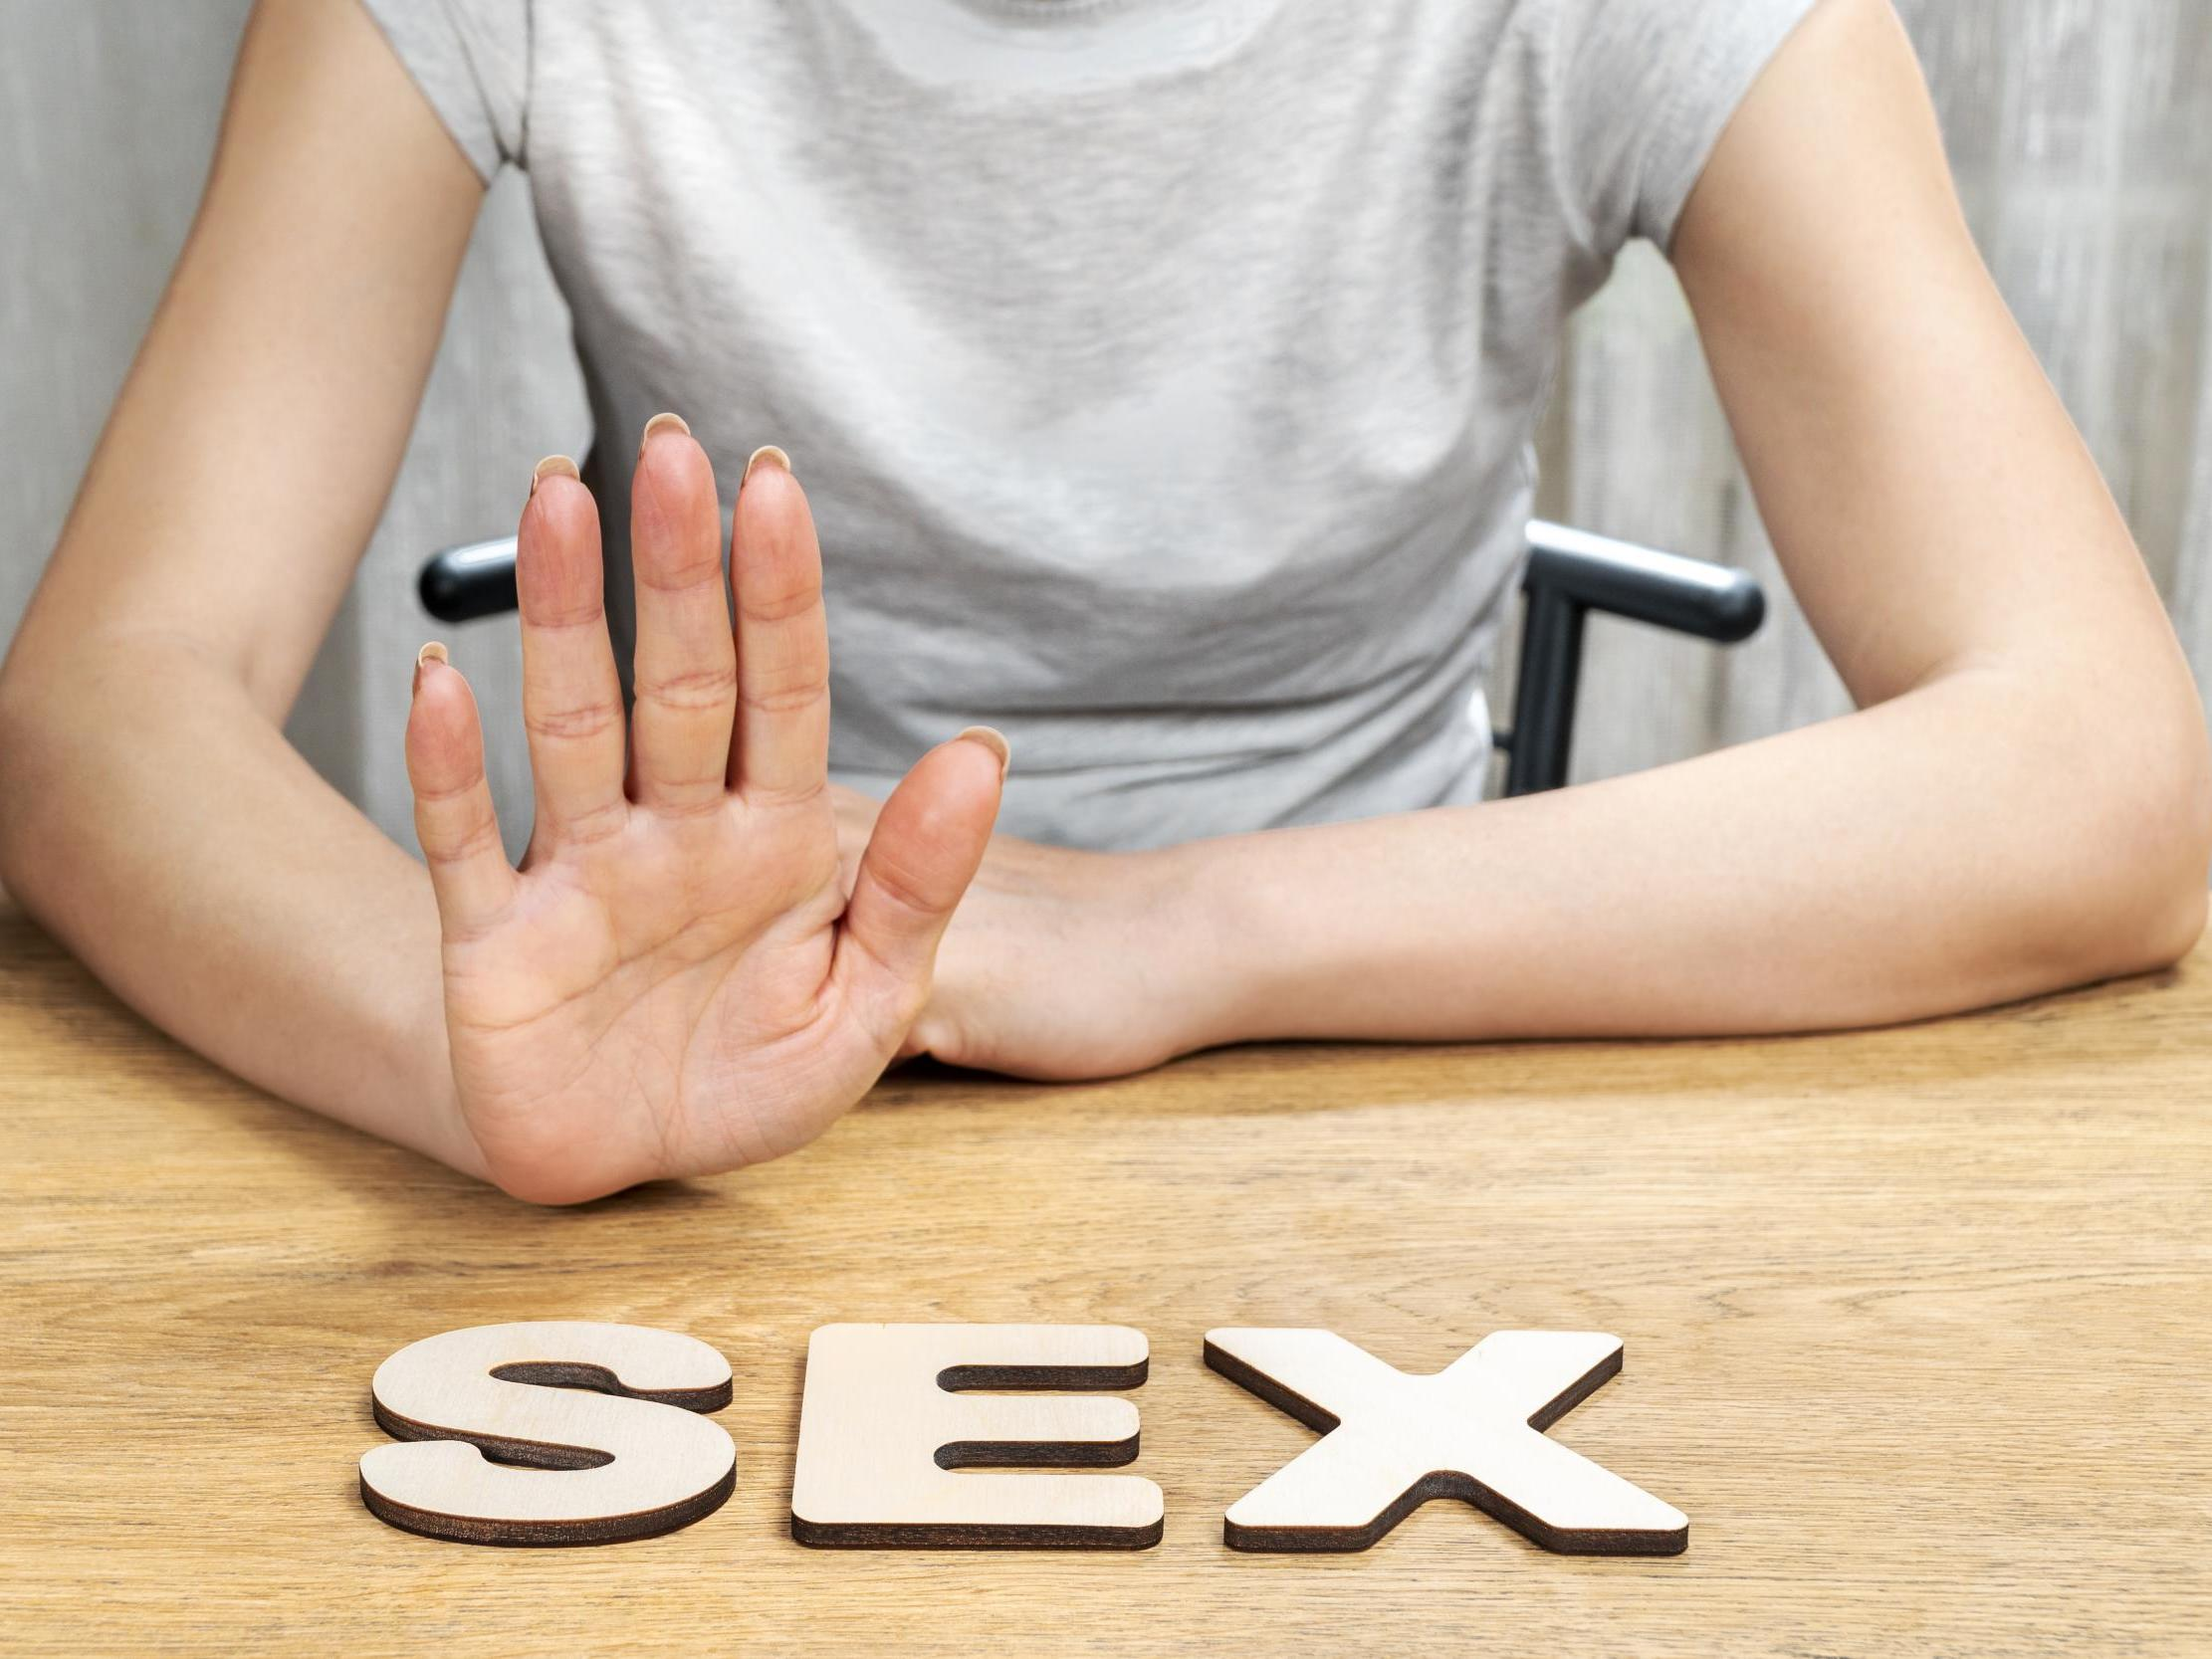 Learning About Sex Through Social Media